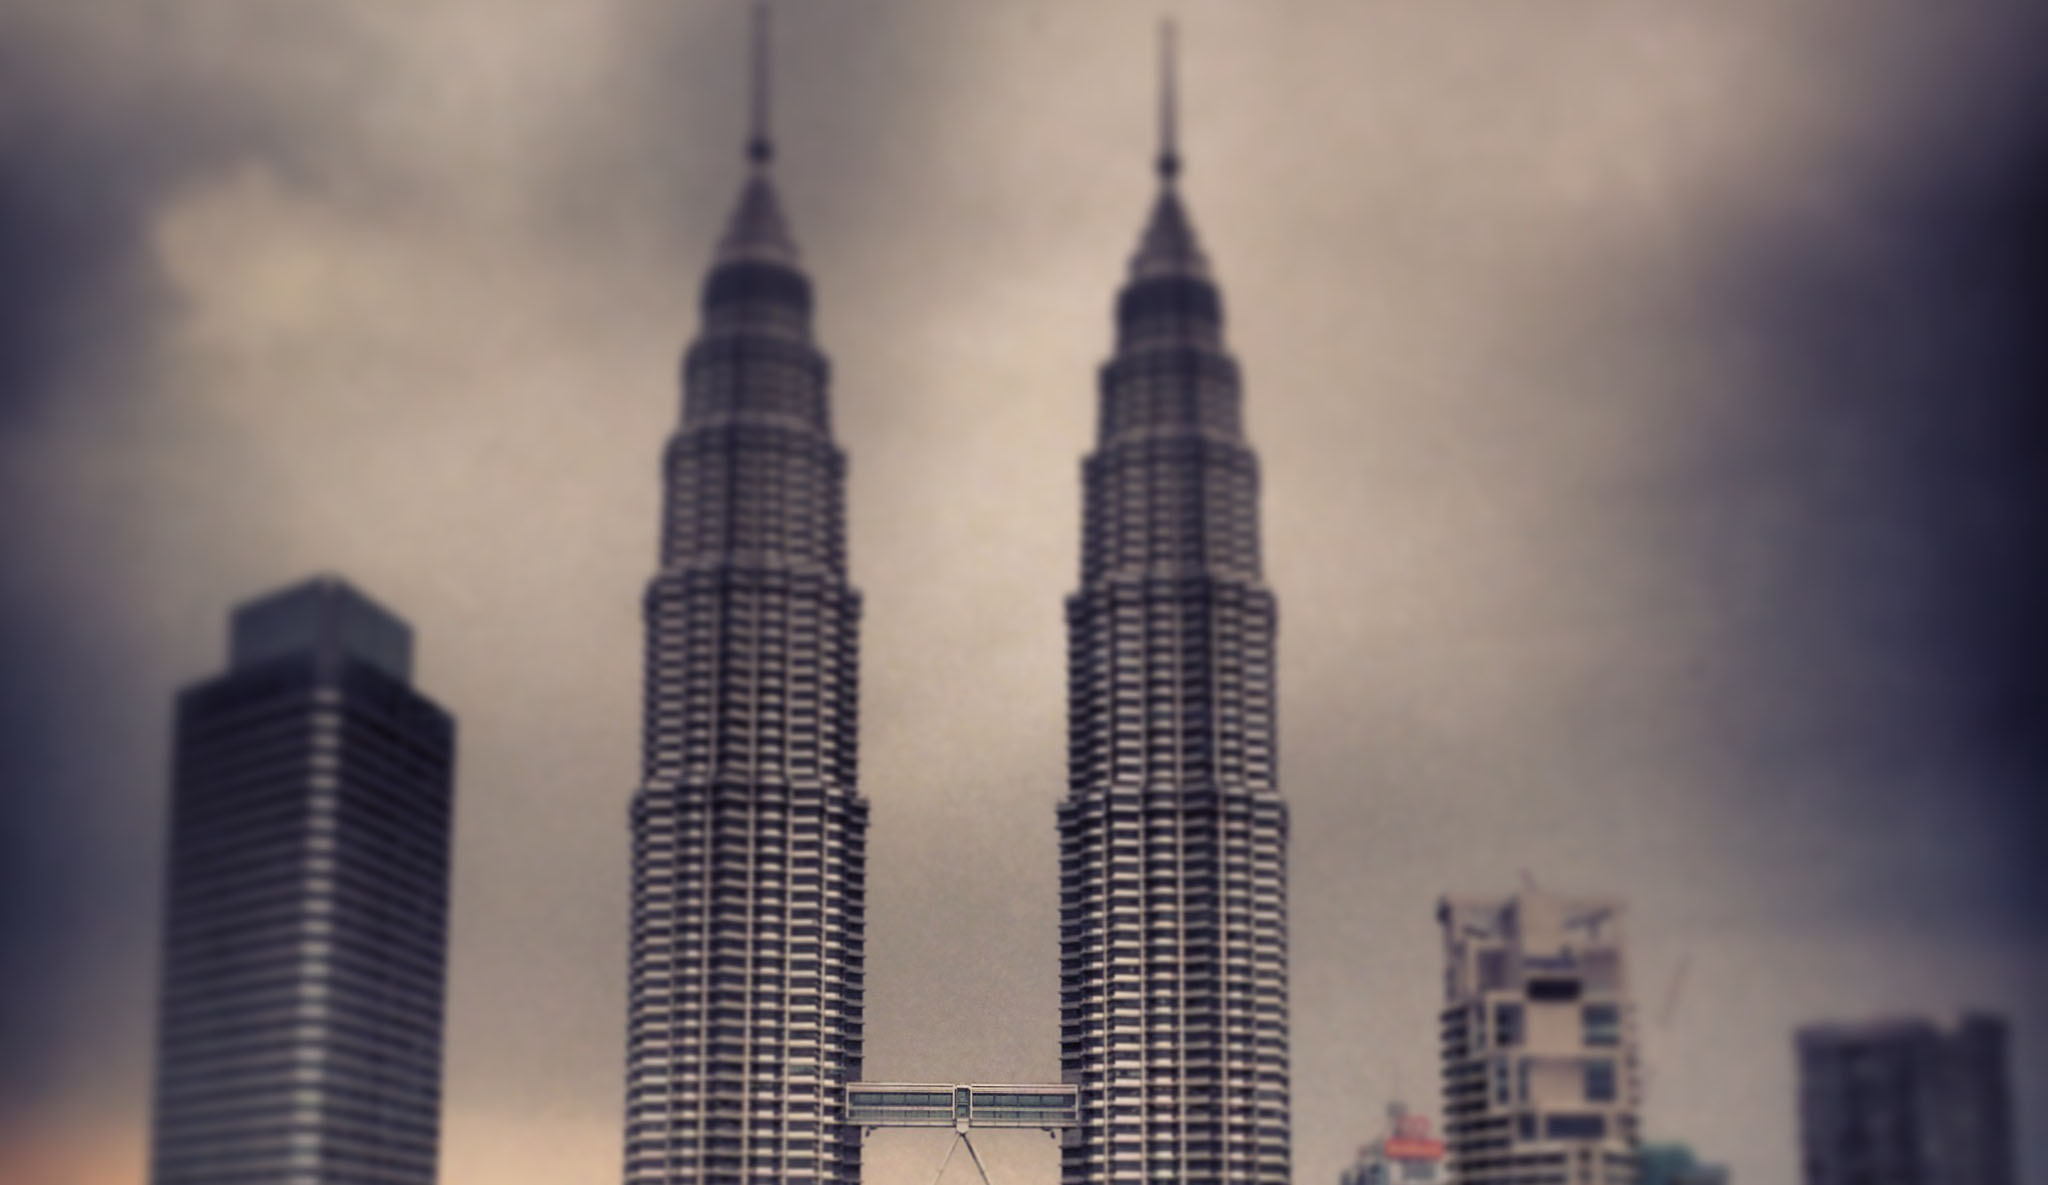 Petronas_towers cover